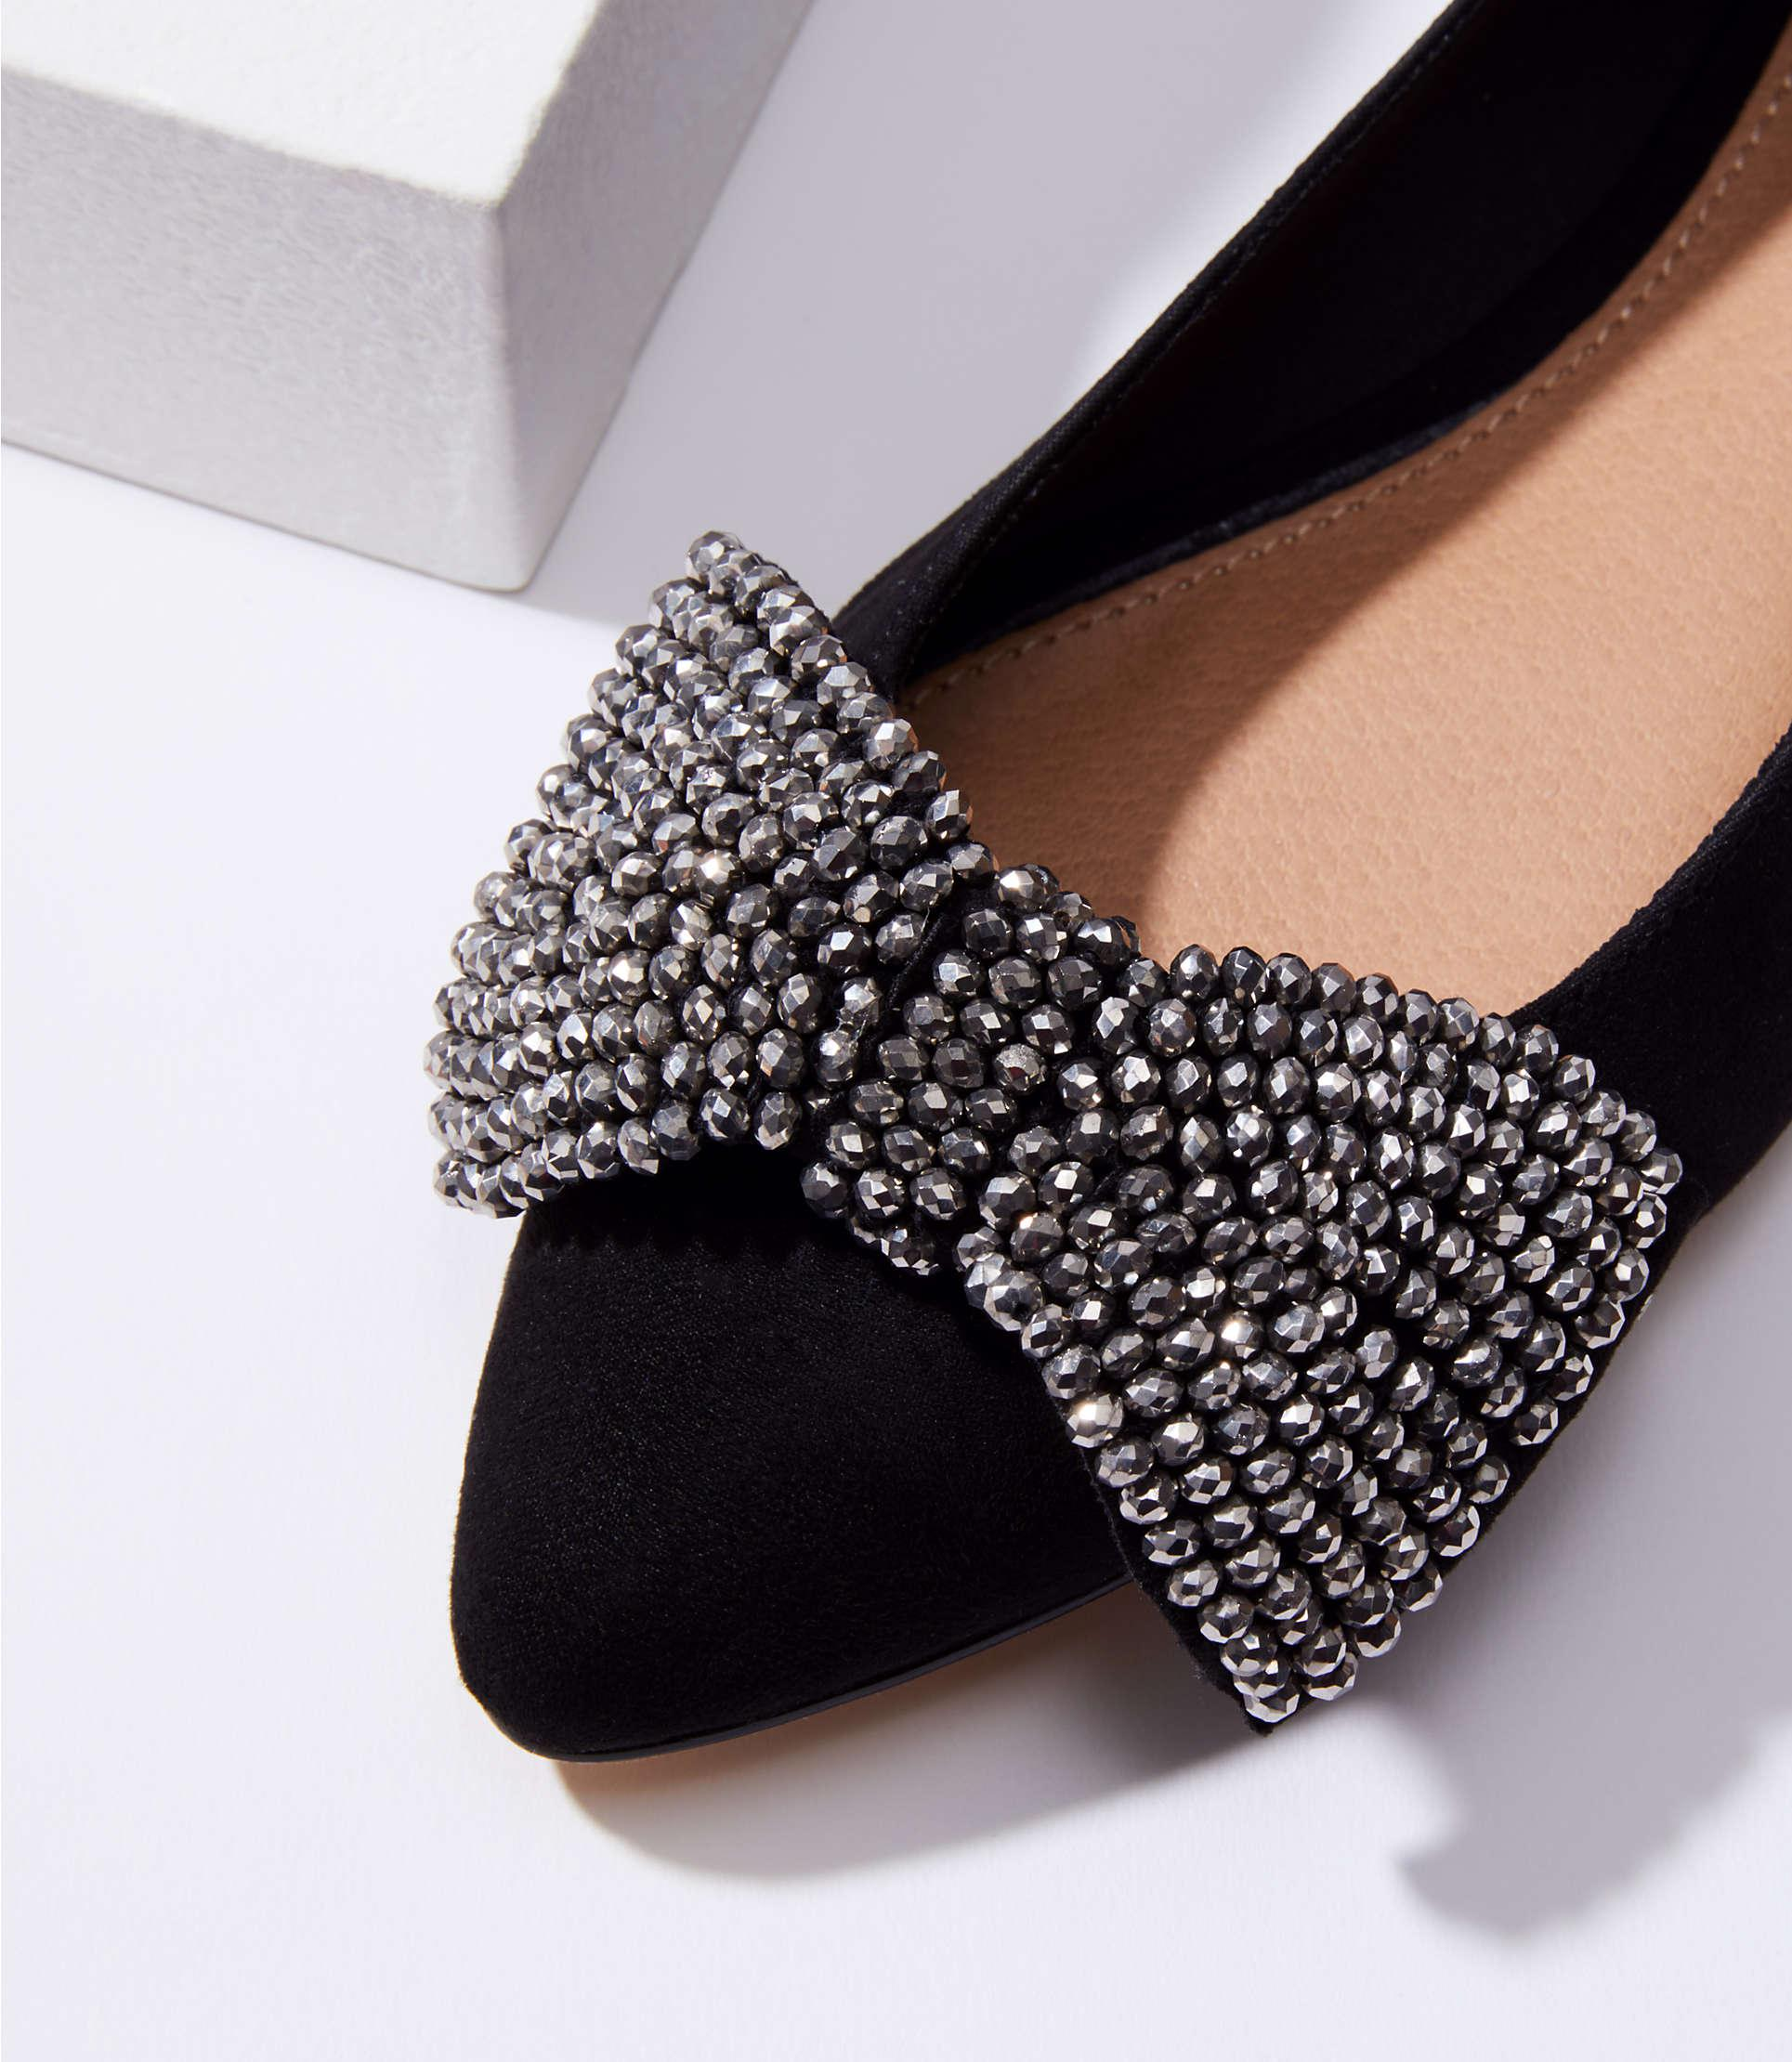 b7f3bdcb6dd0 Lyst - LOFT Jeweled Bow Flats in Black